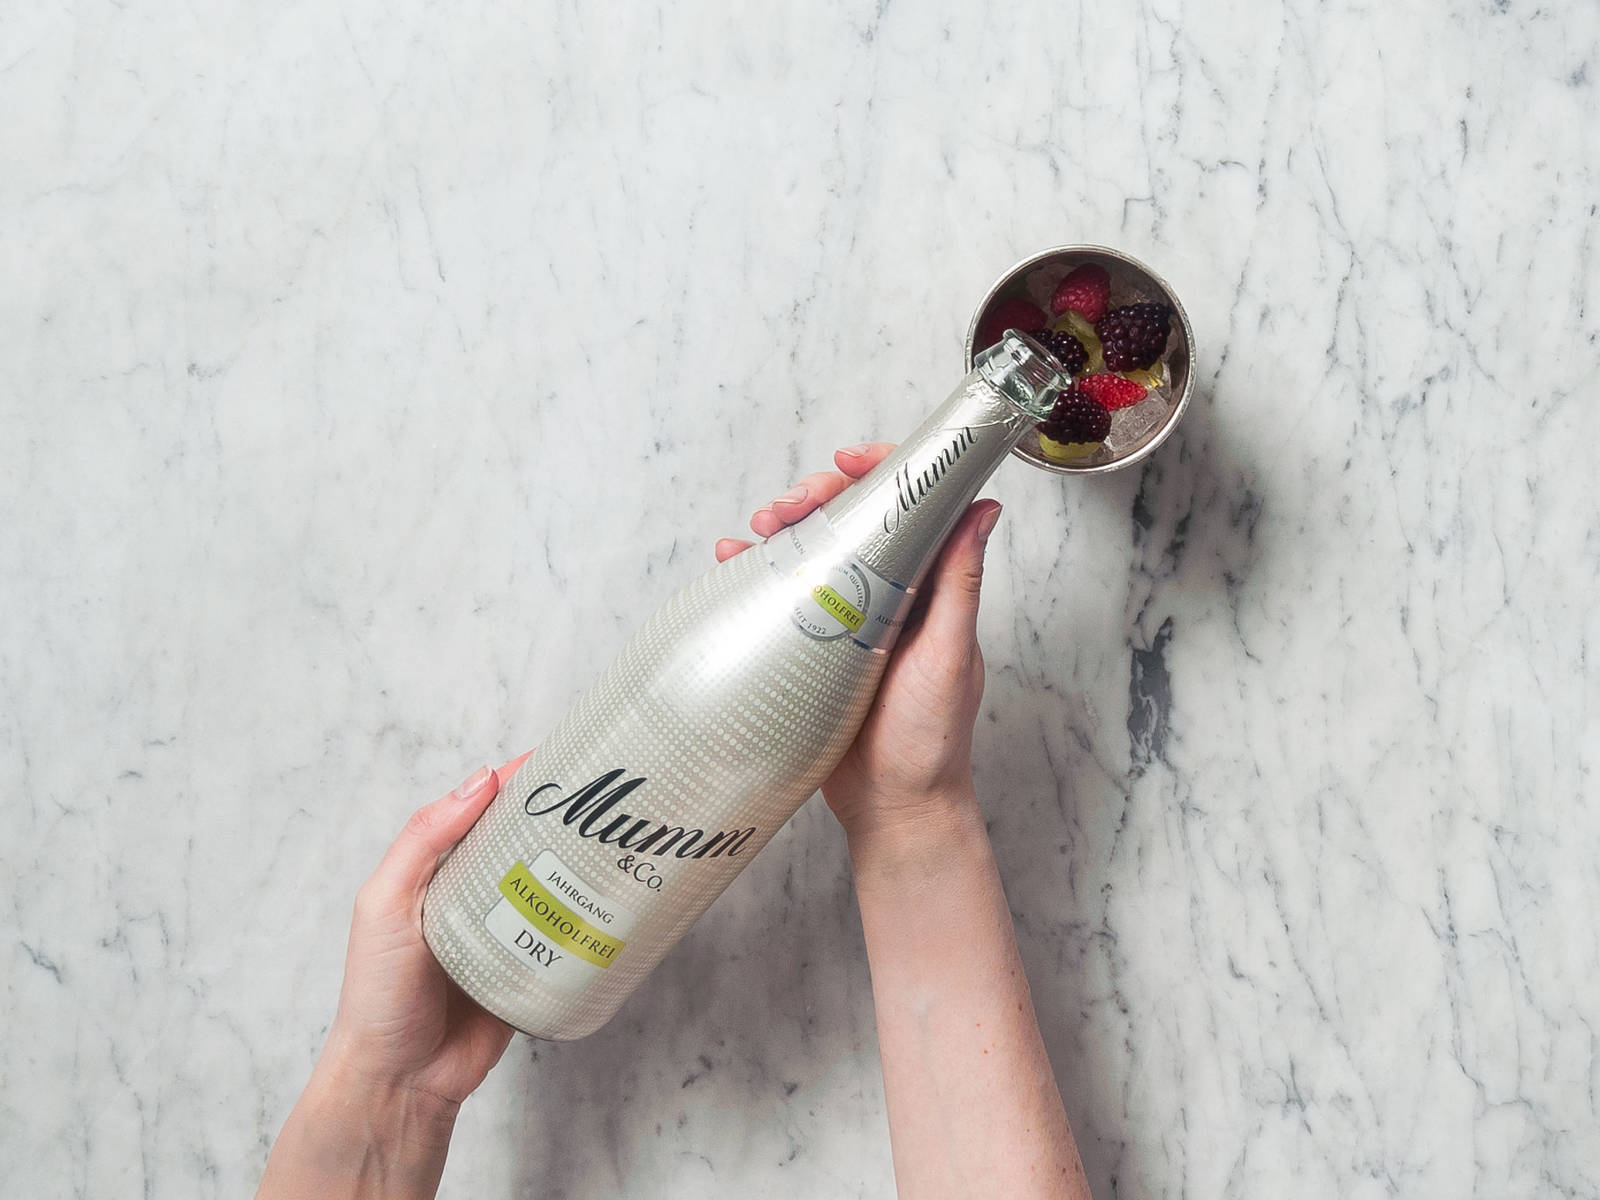 Fill glass with non-alcoholic sparkling wine.